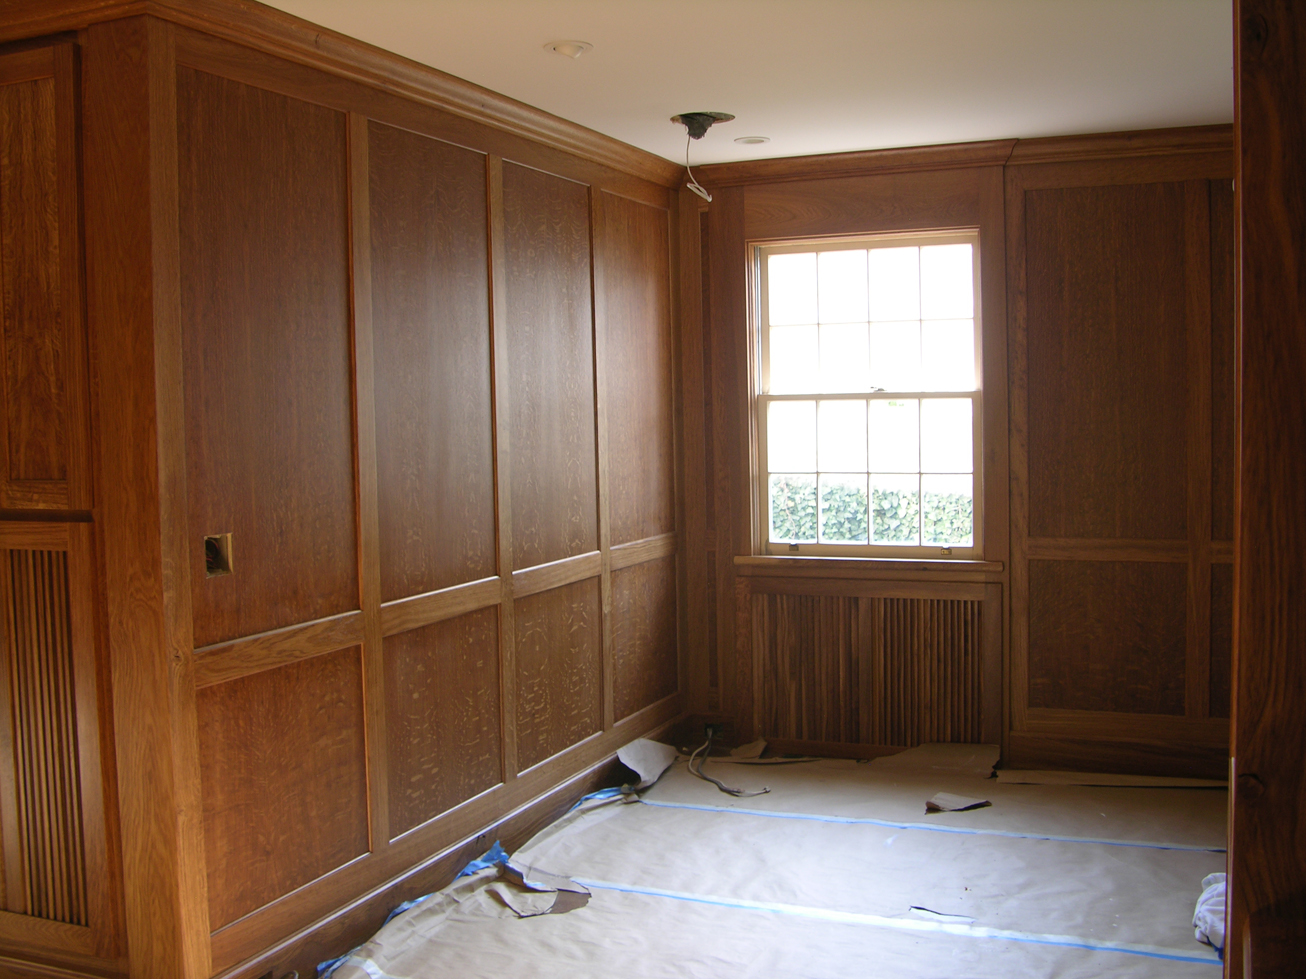 english brown oak paneled room